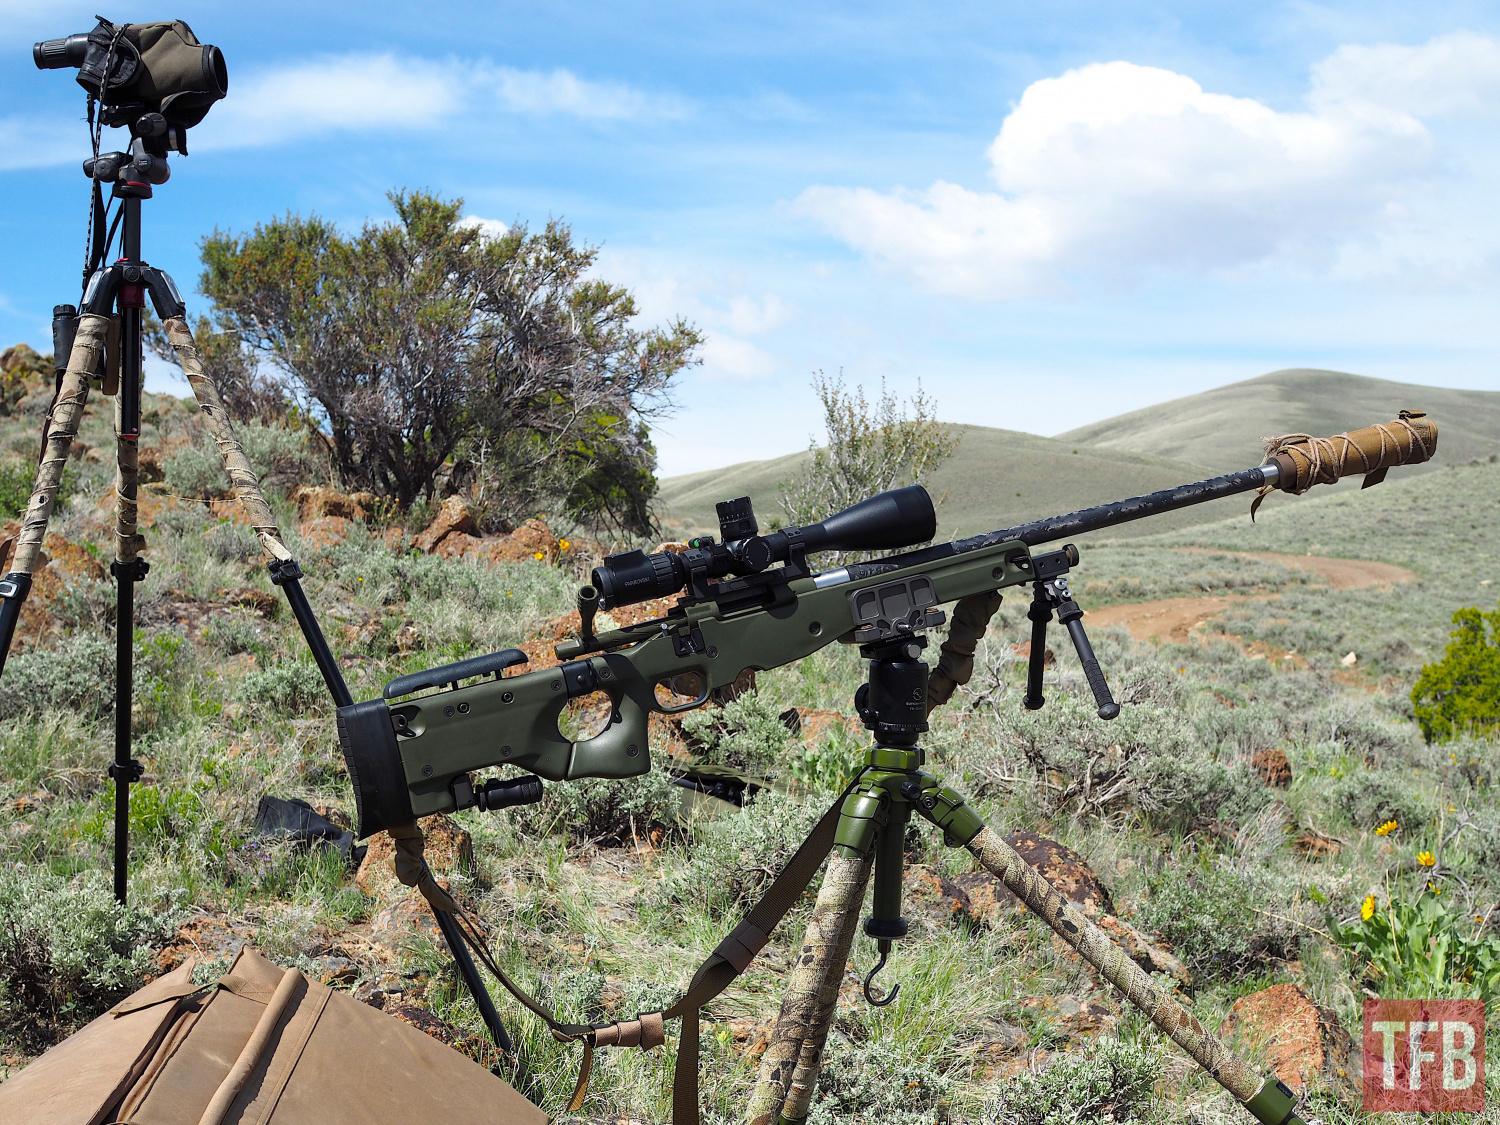 Rifle set up for seated tripod supported shooting